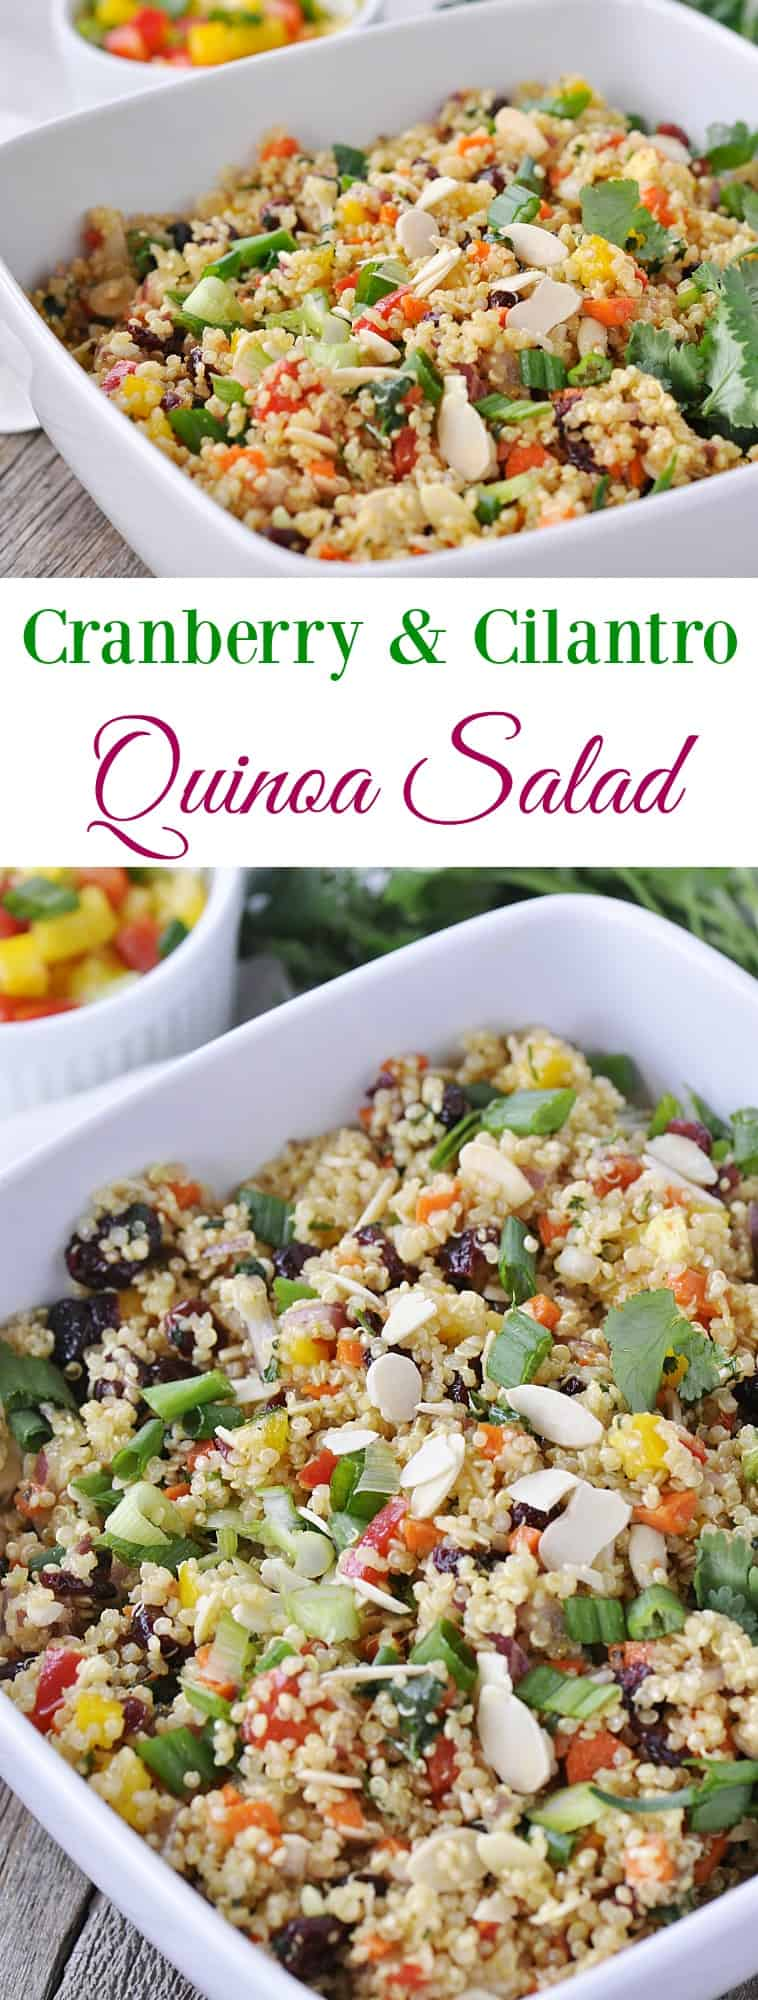 Cranberry & Cilantro Quinoa Salad is the perfect healthy side dish.